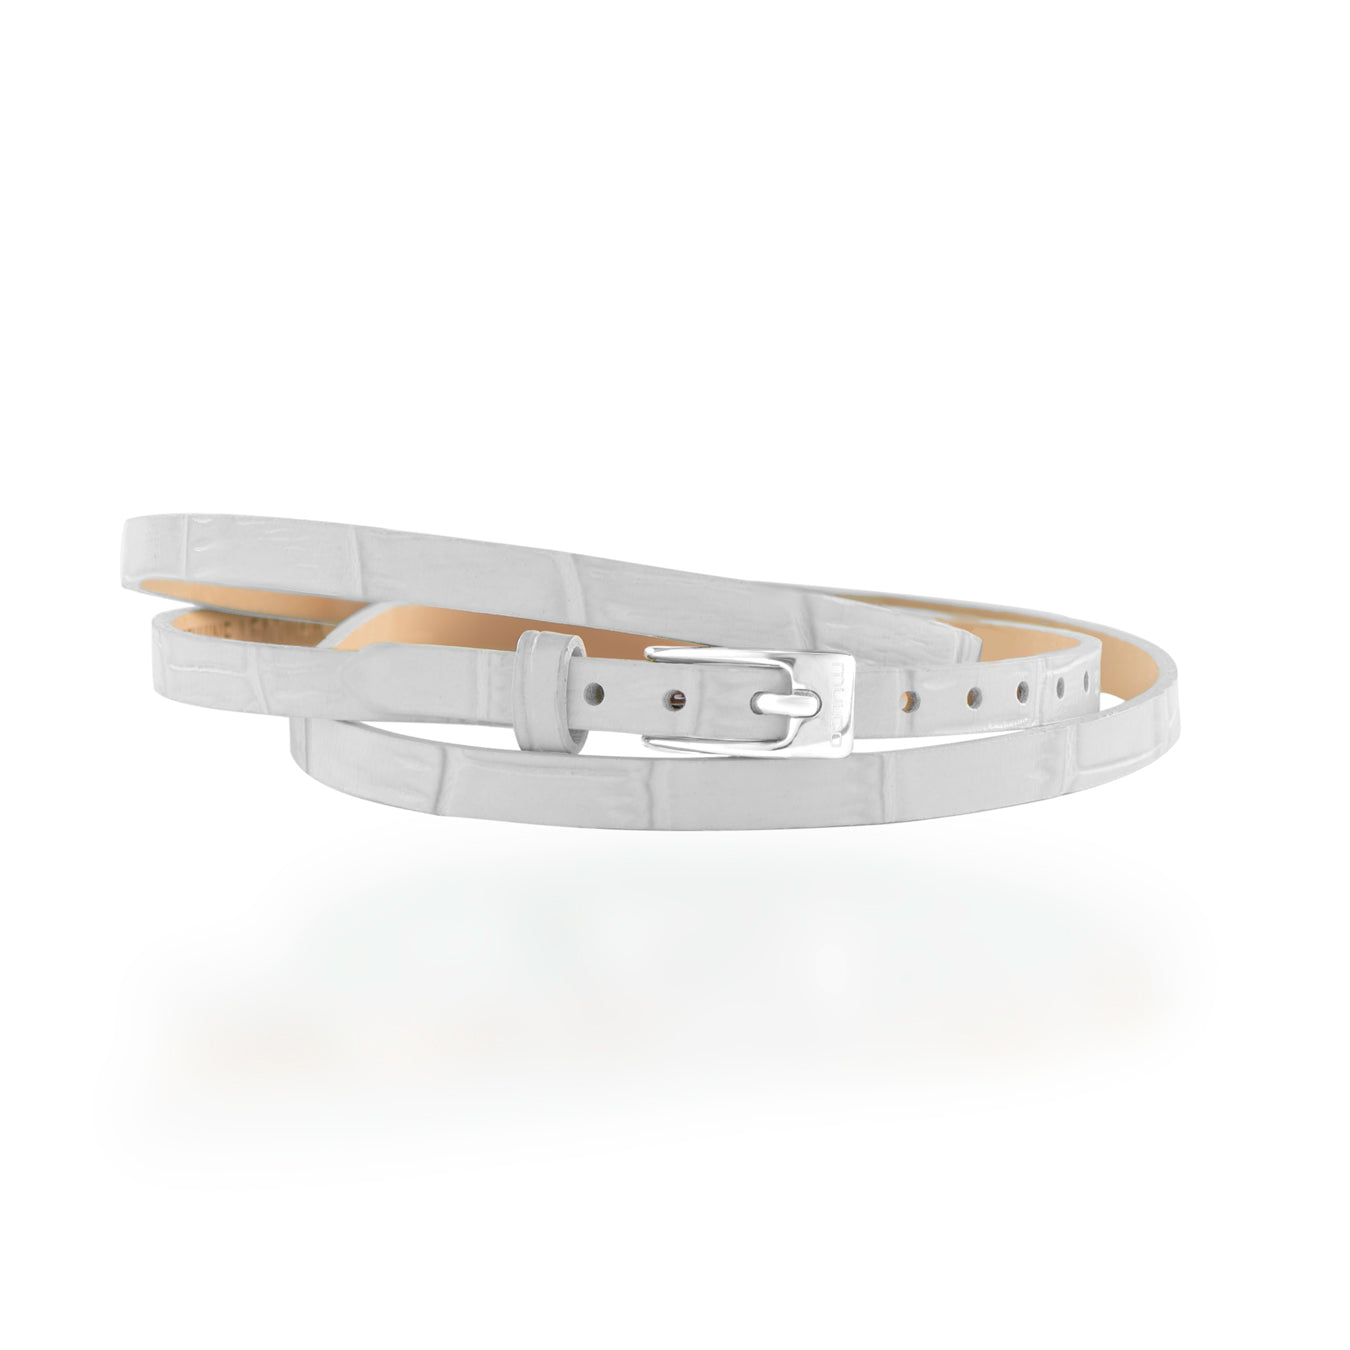 Leather Wrap Bracelet B - White Accessories Mulco-Usa